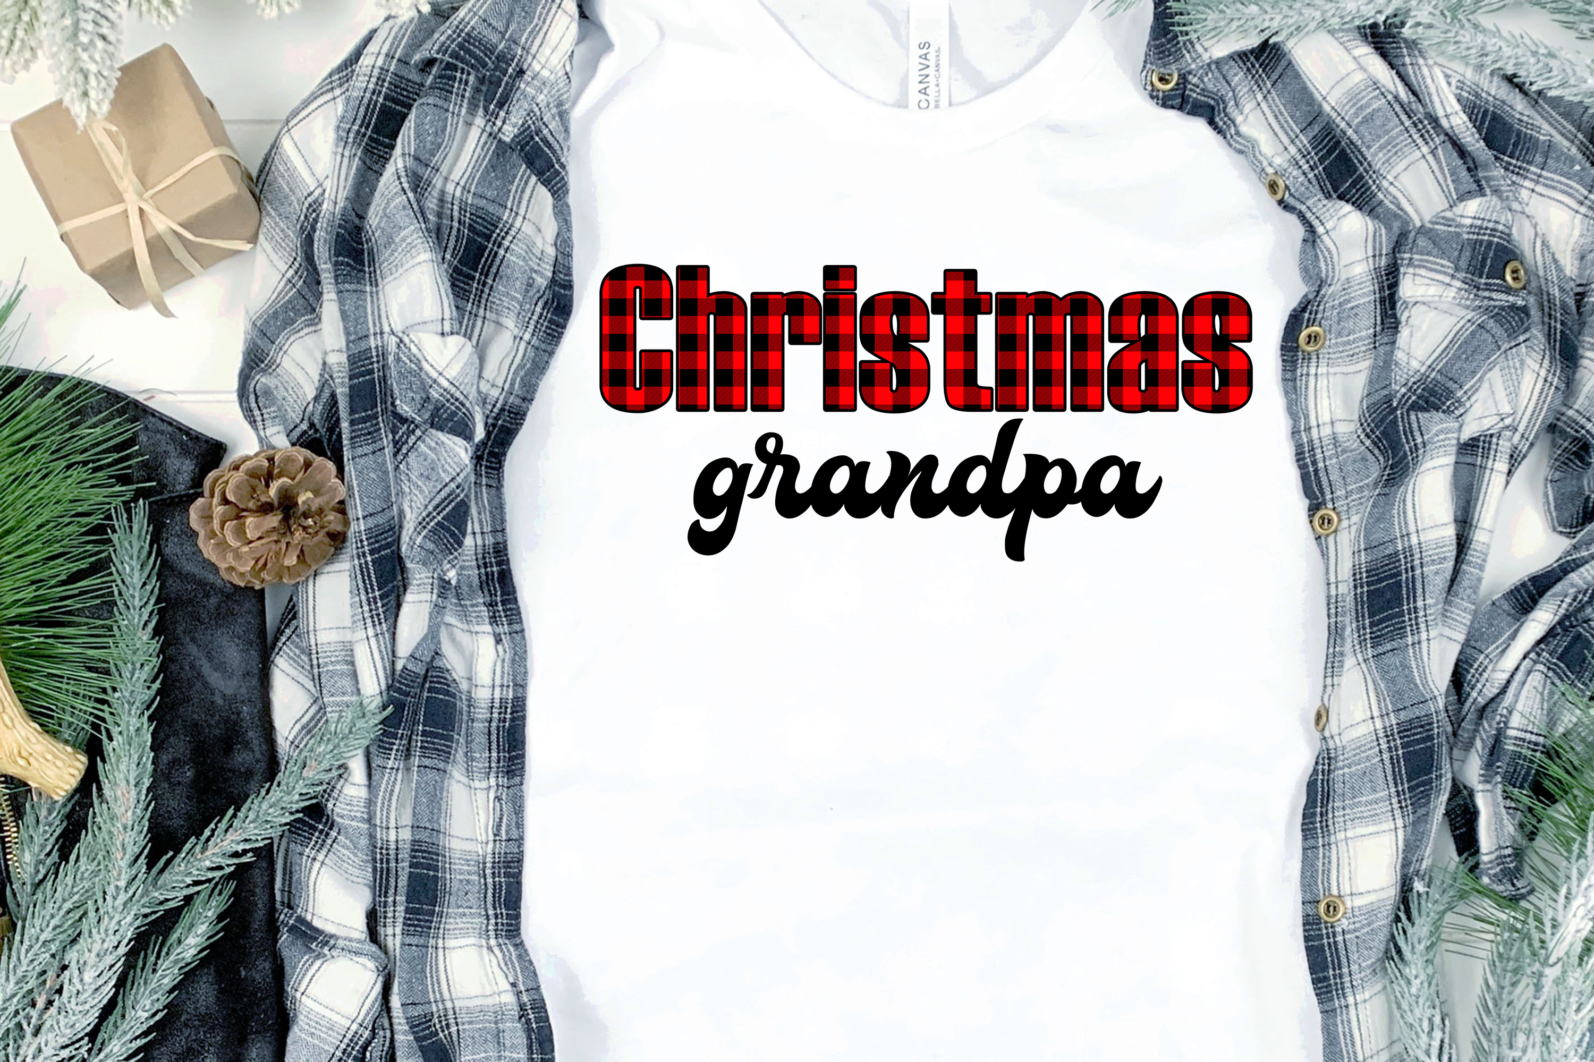 Christmas PNG Sublimation Design. Sublimation for t-shirt, mug and other. - CF1 17 -